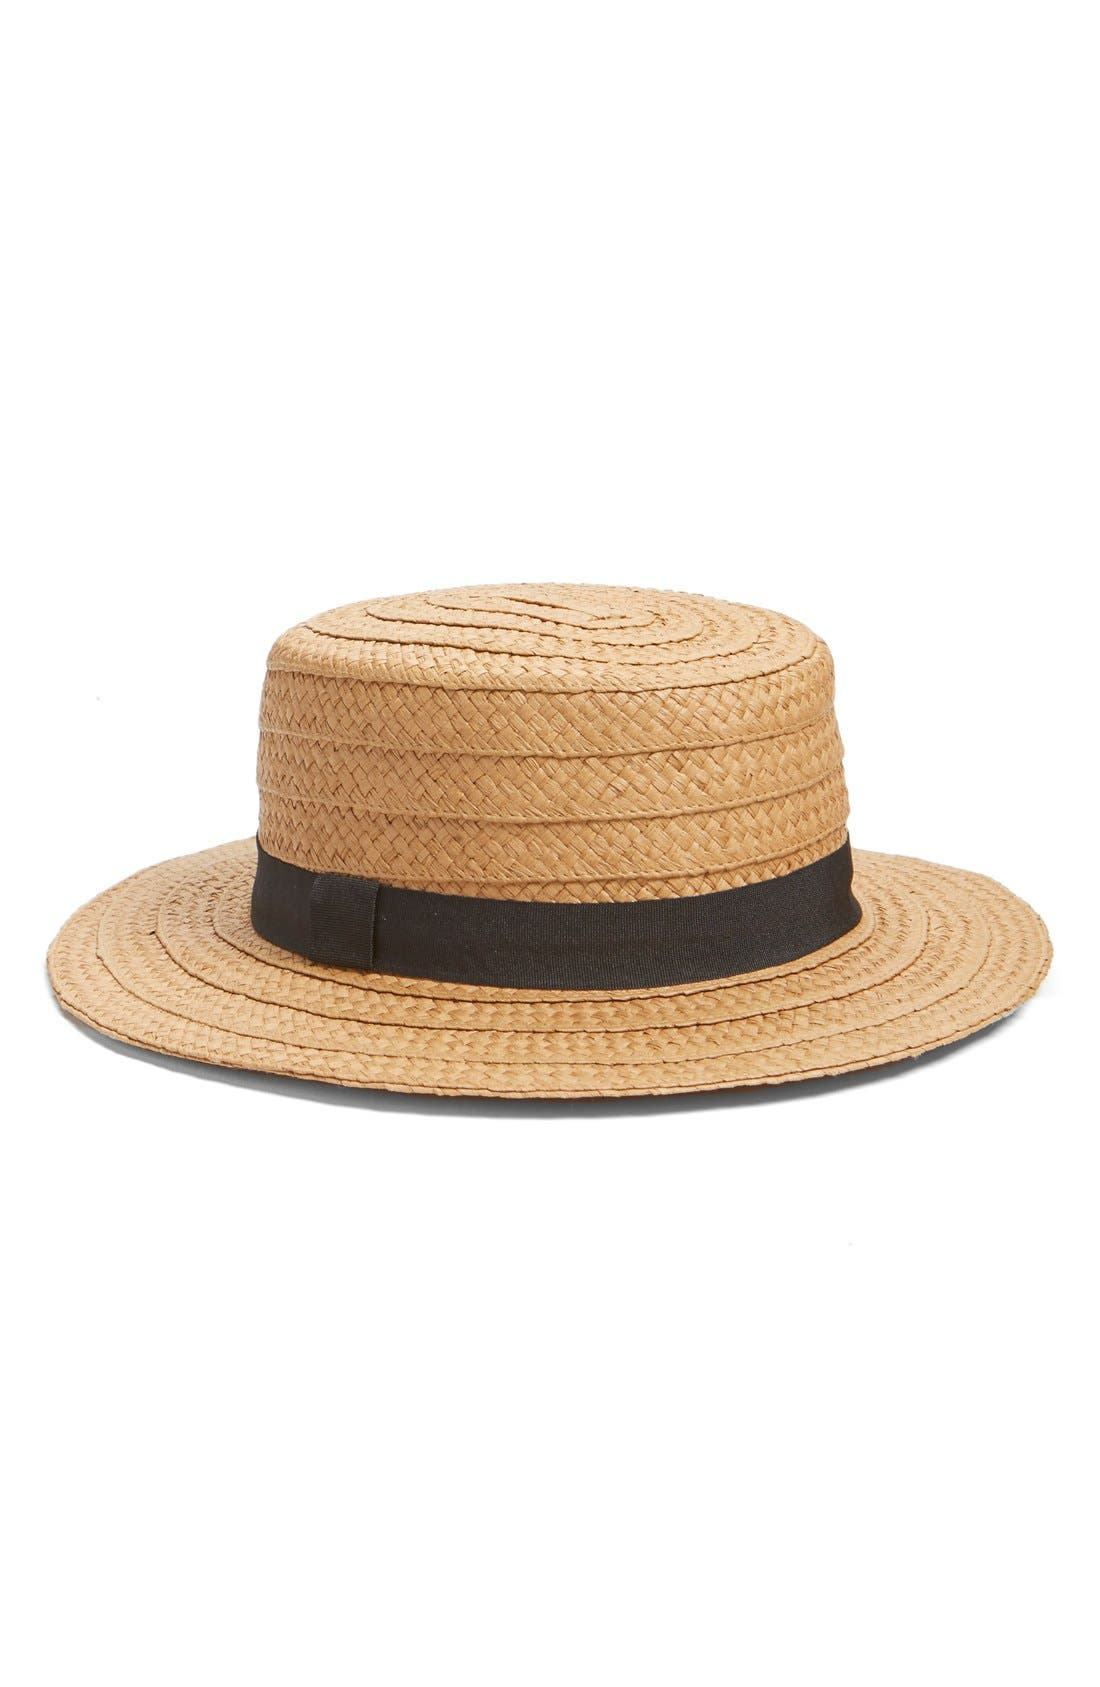 Main Image - Hinge Straw Boater Hat